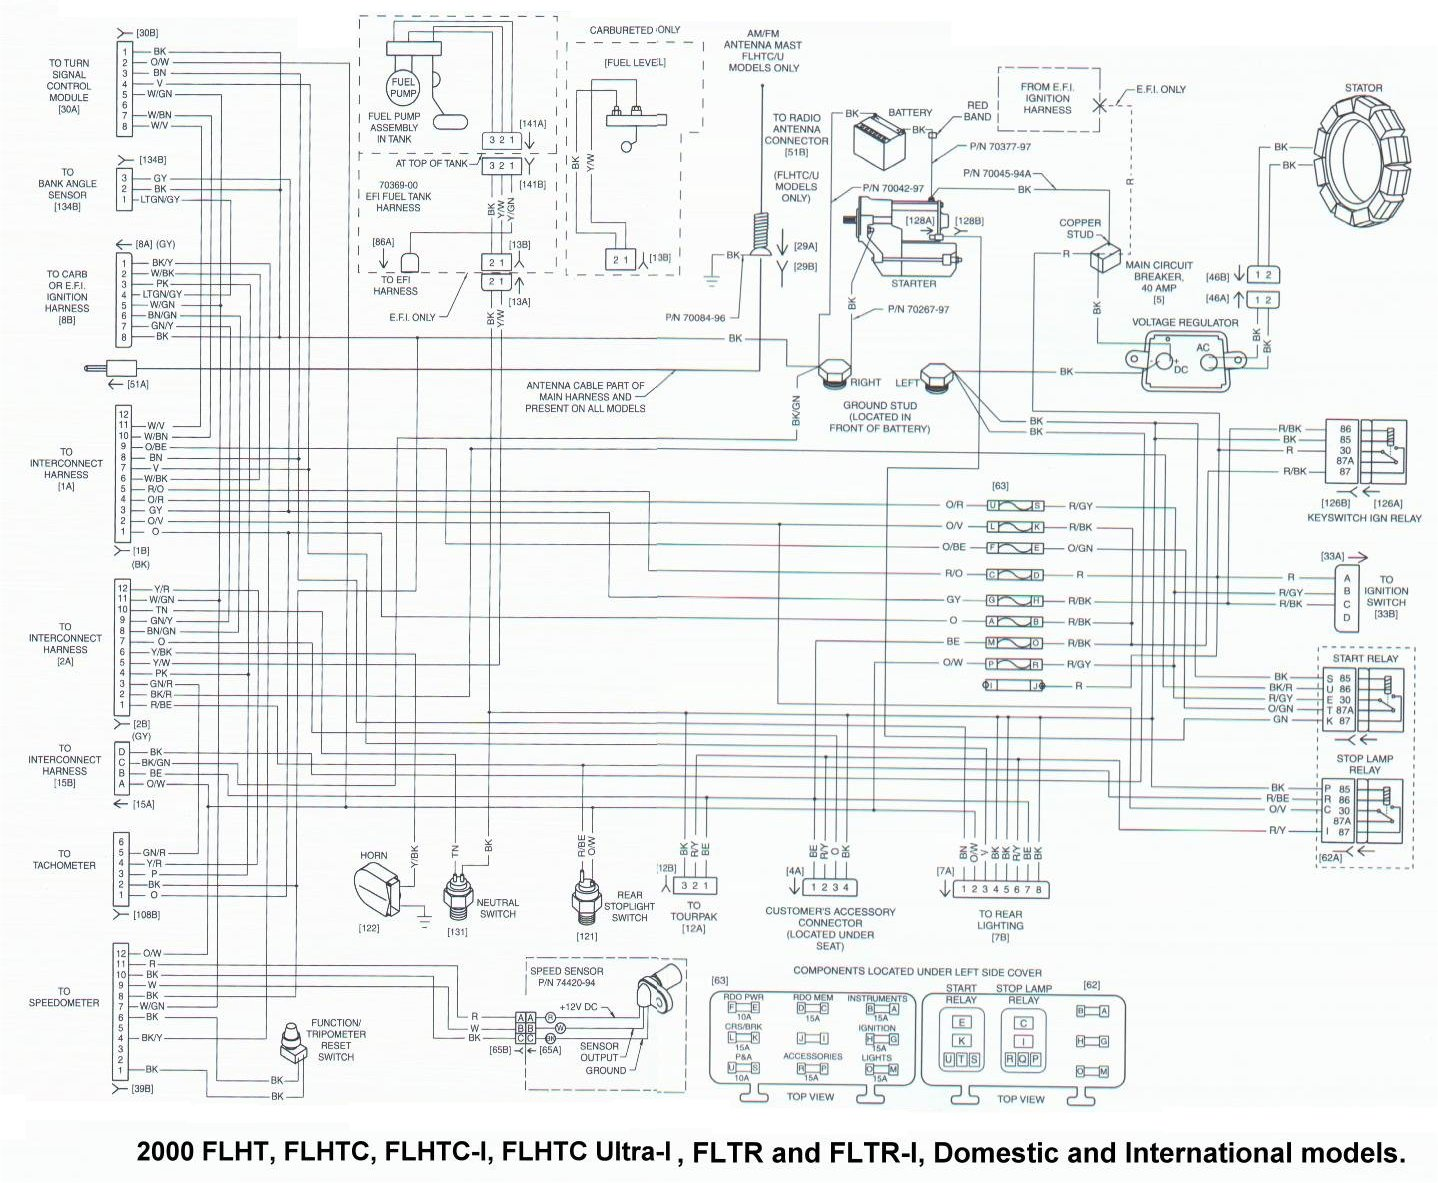 wiring diagram 1996 harley - Wiring Diagram